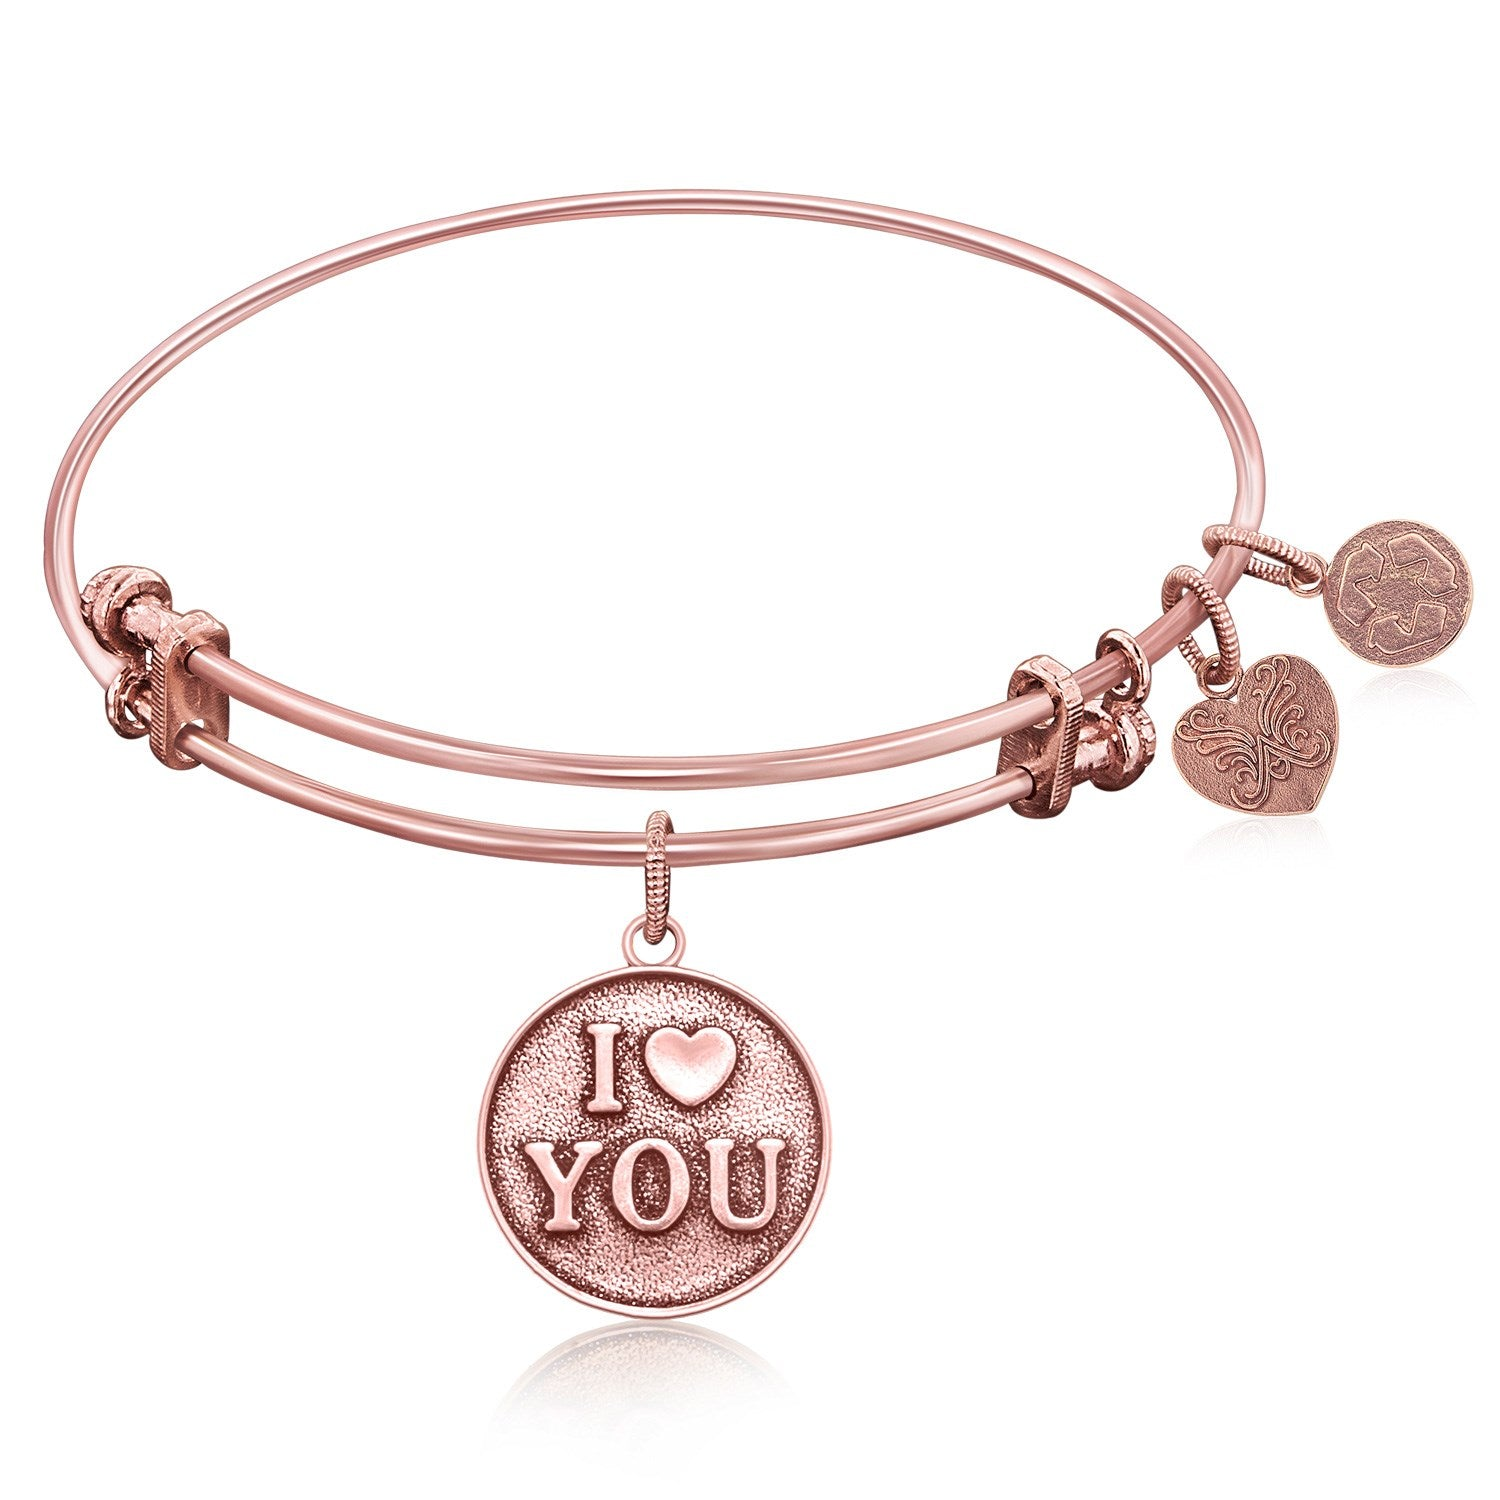 Luxury London Style Original Expandable Bangle in Pink Tone Brass with I Love You Symbol